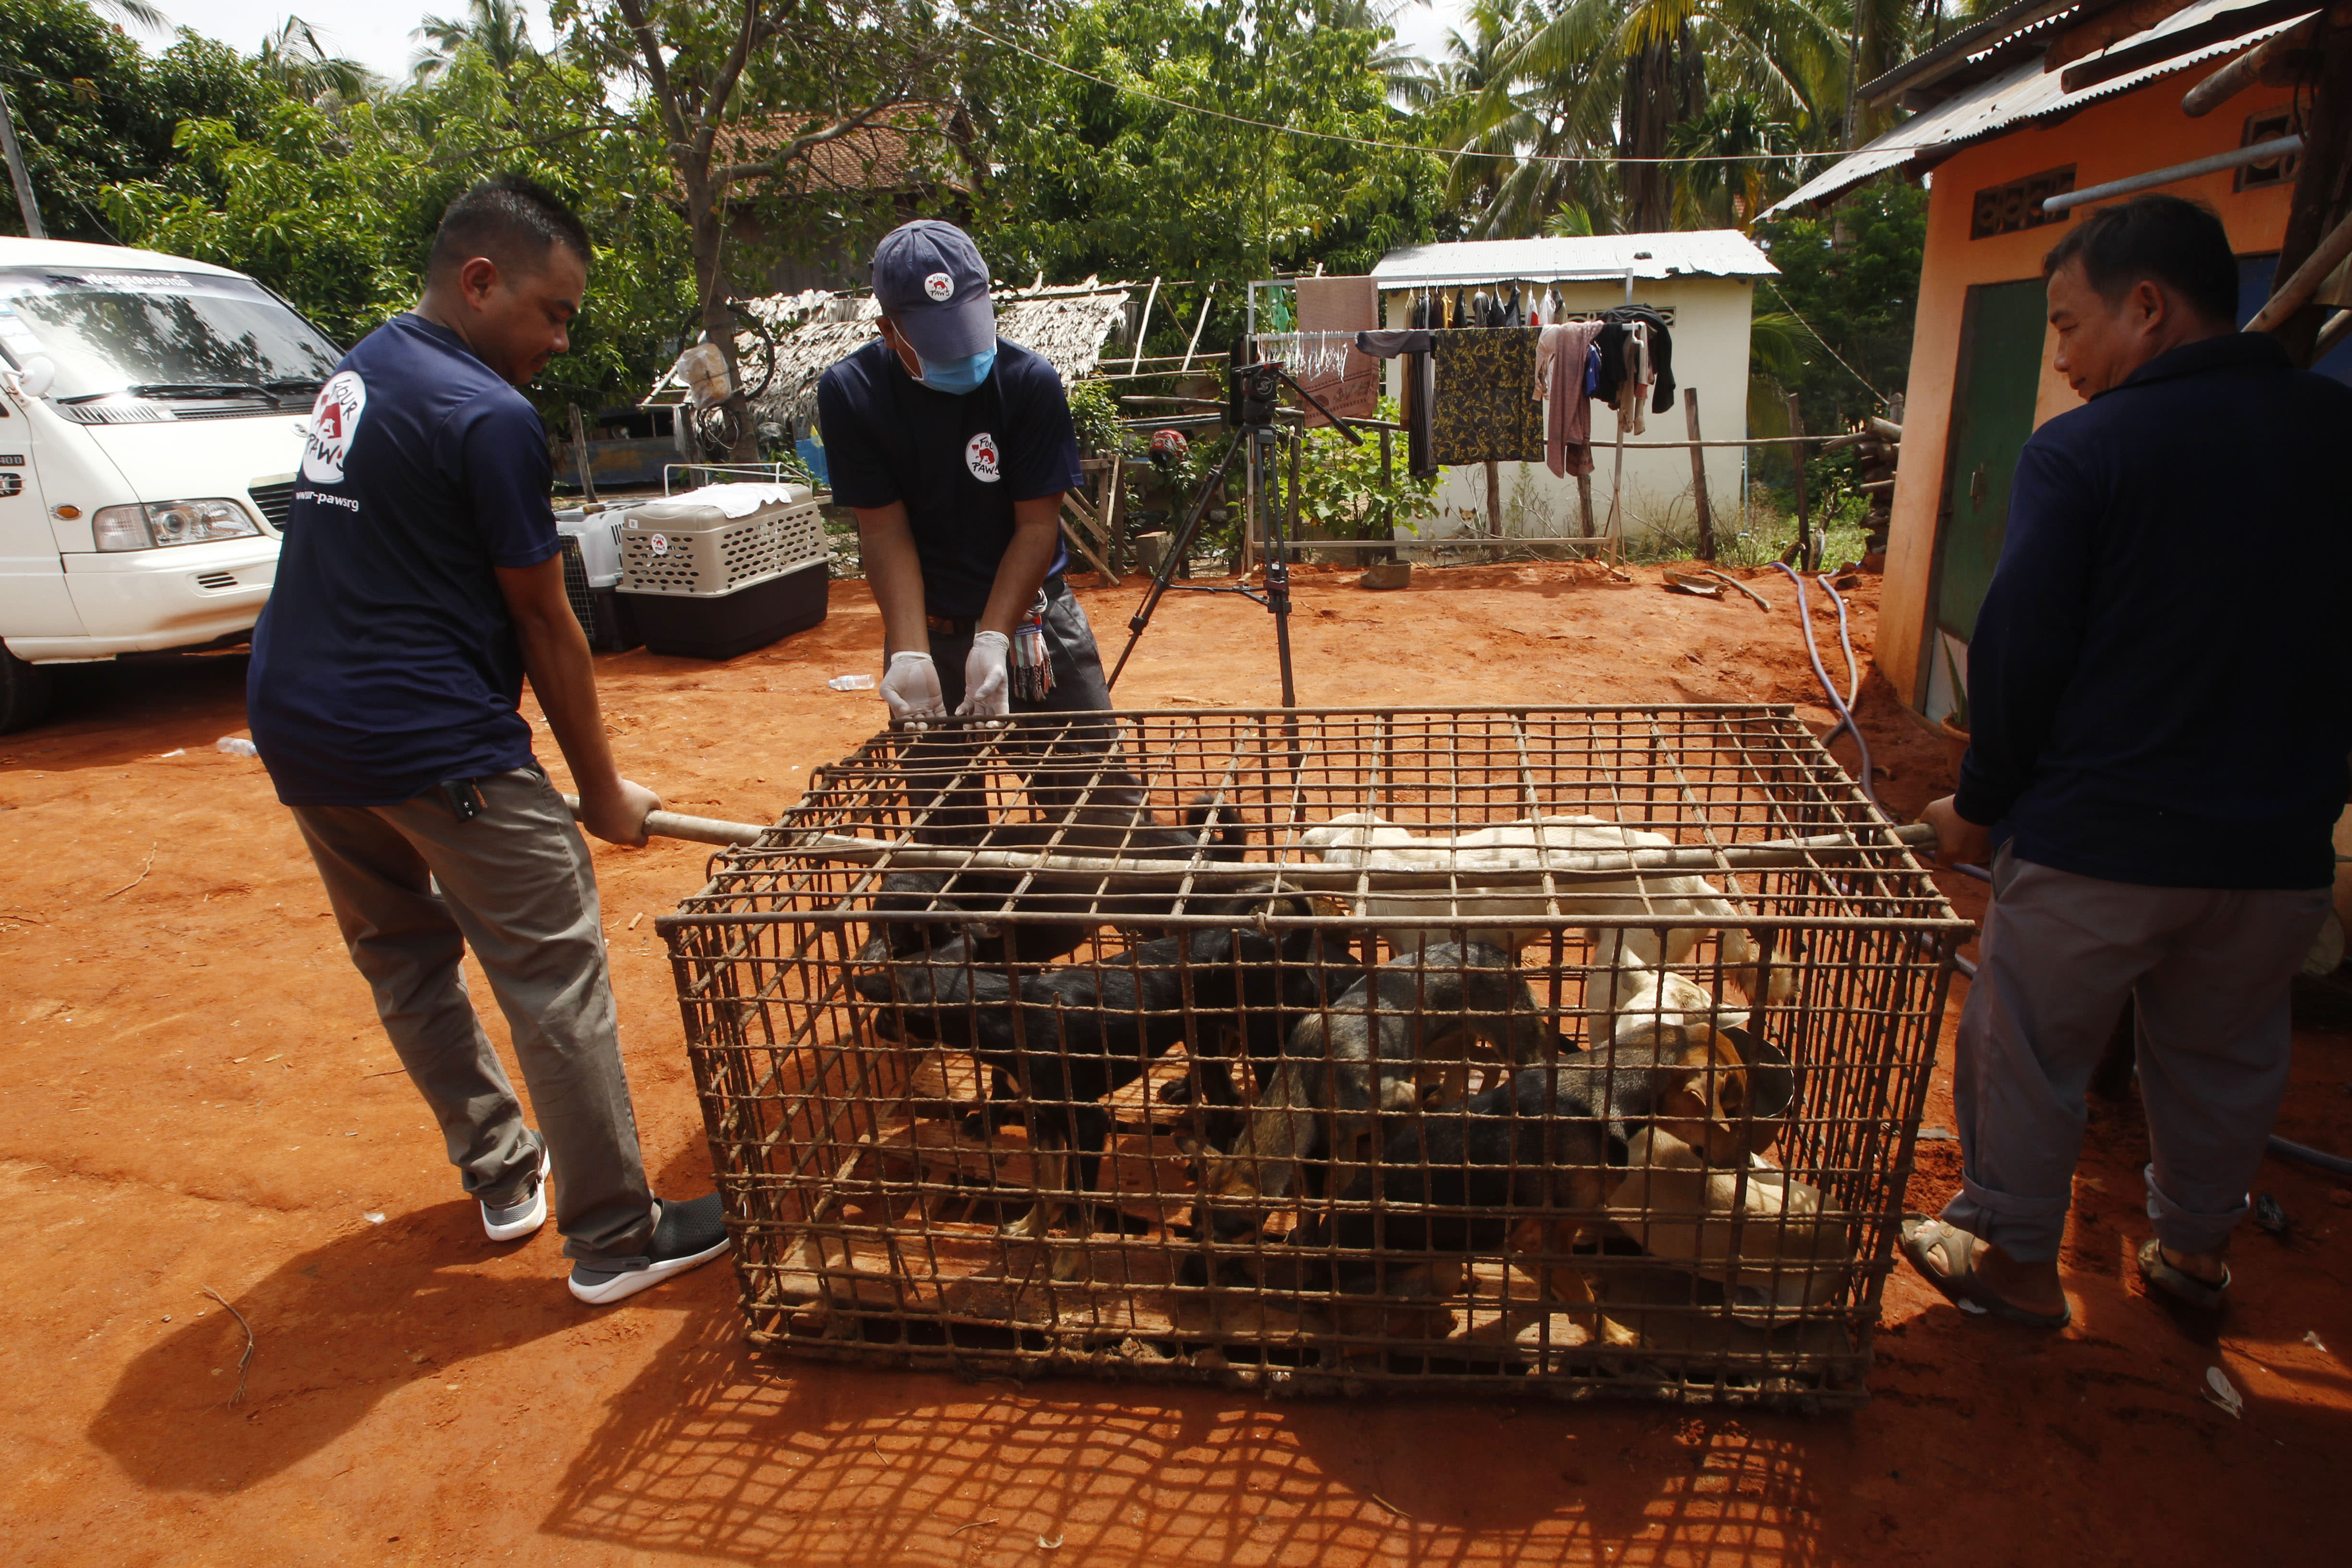 Staff members of FOUR PAWS International, carry a big dog's cage before they loading into their cages at Chi Meakh village in Kampong Thom province north of Phnom Penh, Cambodia, Wednesday, Aug. 5, 2020. Animal rights activists in Cambodia have gained a small victory in their effort to end the trade in dog meat, convincing a canine slaughterhouse in one village to abandon the business. (AP Photo/Heng Sinith)